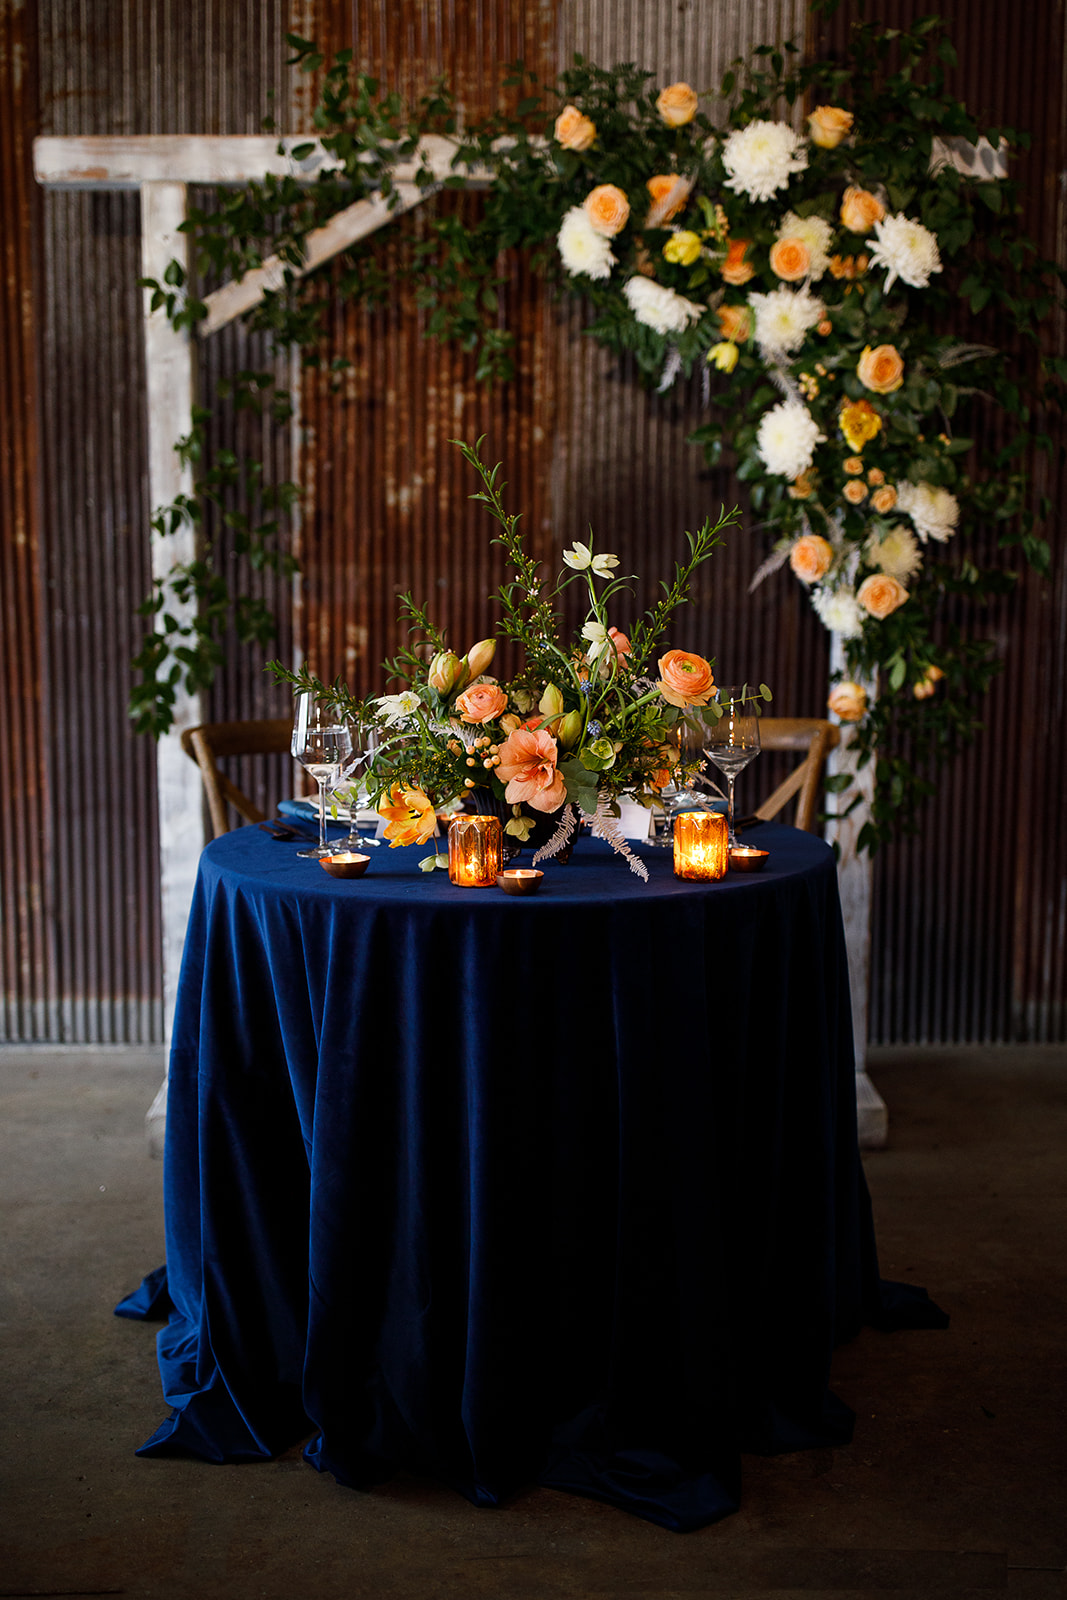 Wedding Sweetheart Table: Southern Wedding Styled Shoot by Nashville Wedding Planners Group